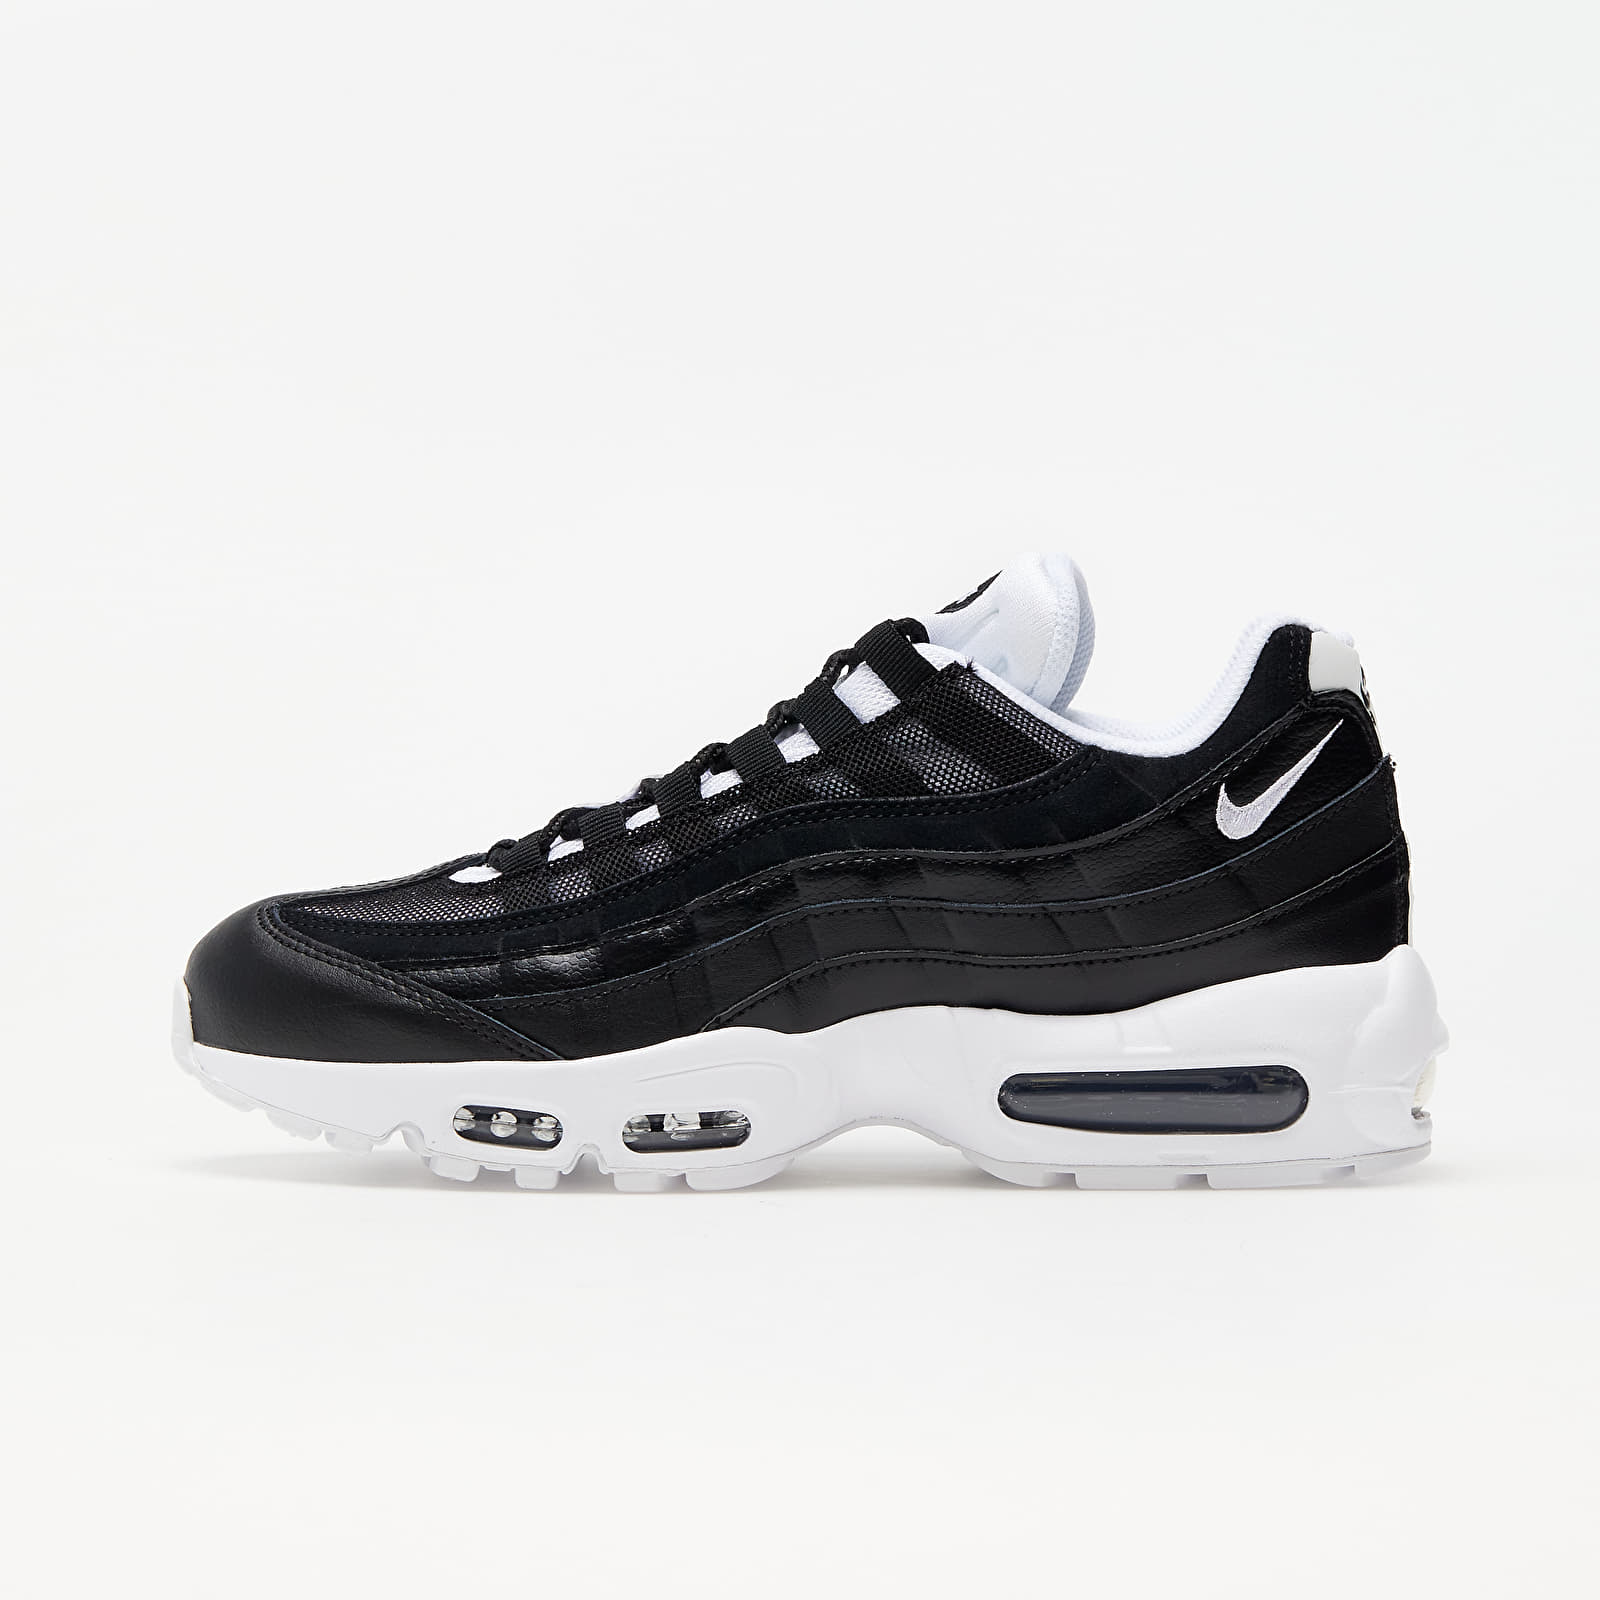 Nike Air Max 95 Essential Black/ White EUR 41